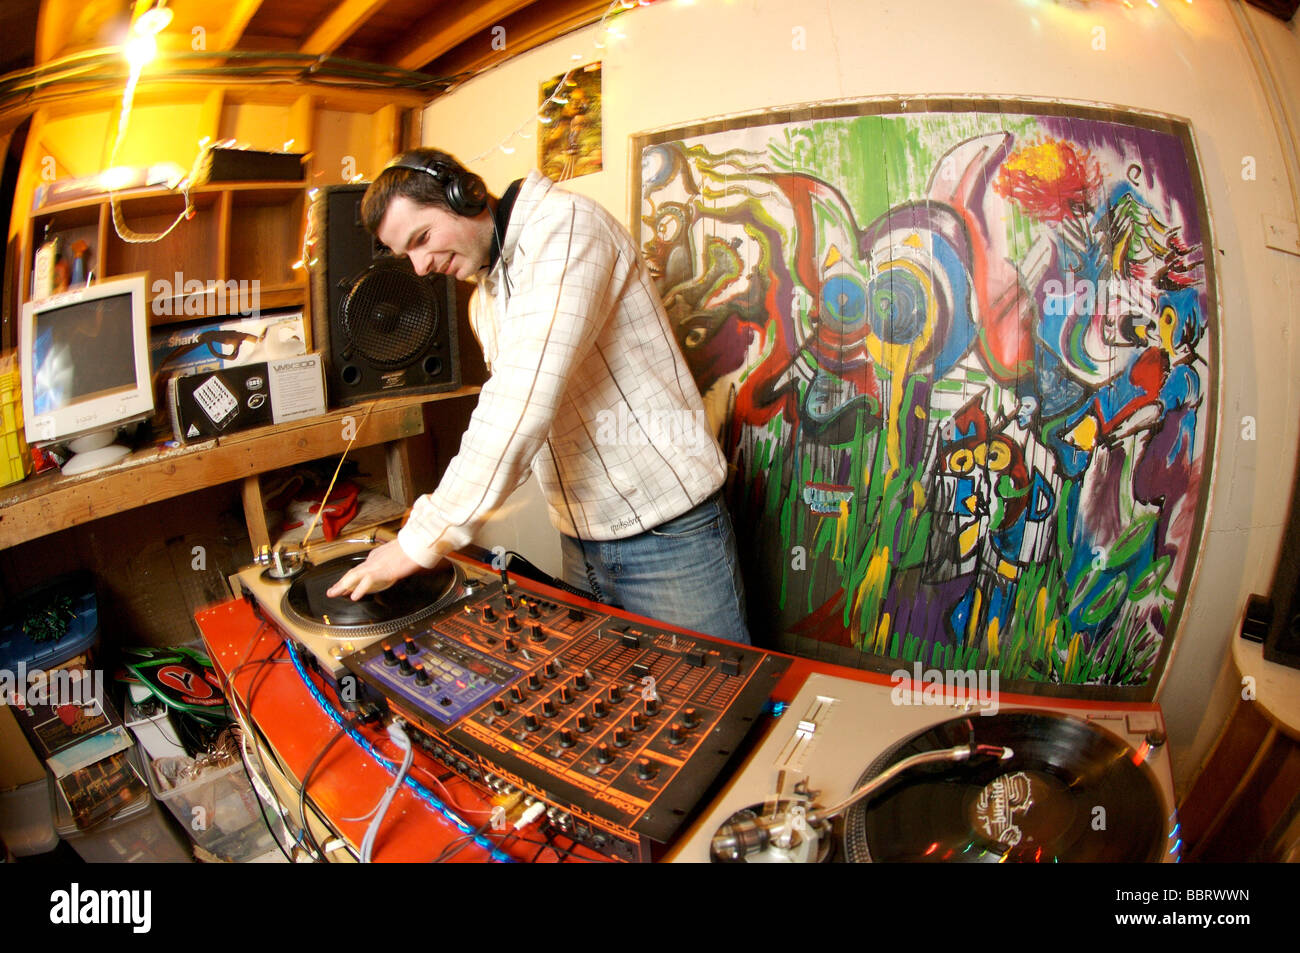 A Disk Jockey spins records at a night club - Stock Image